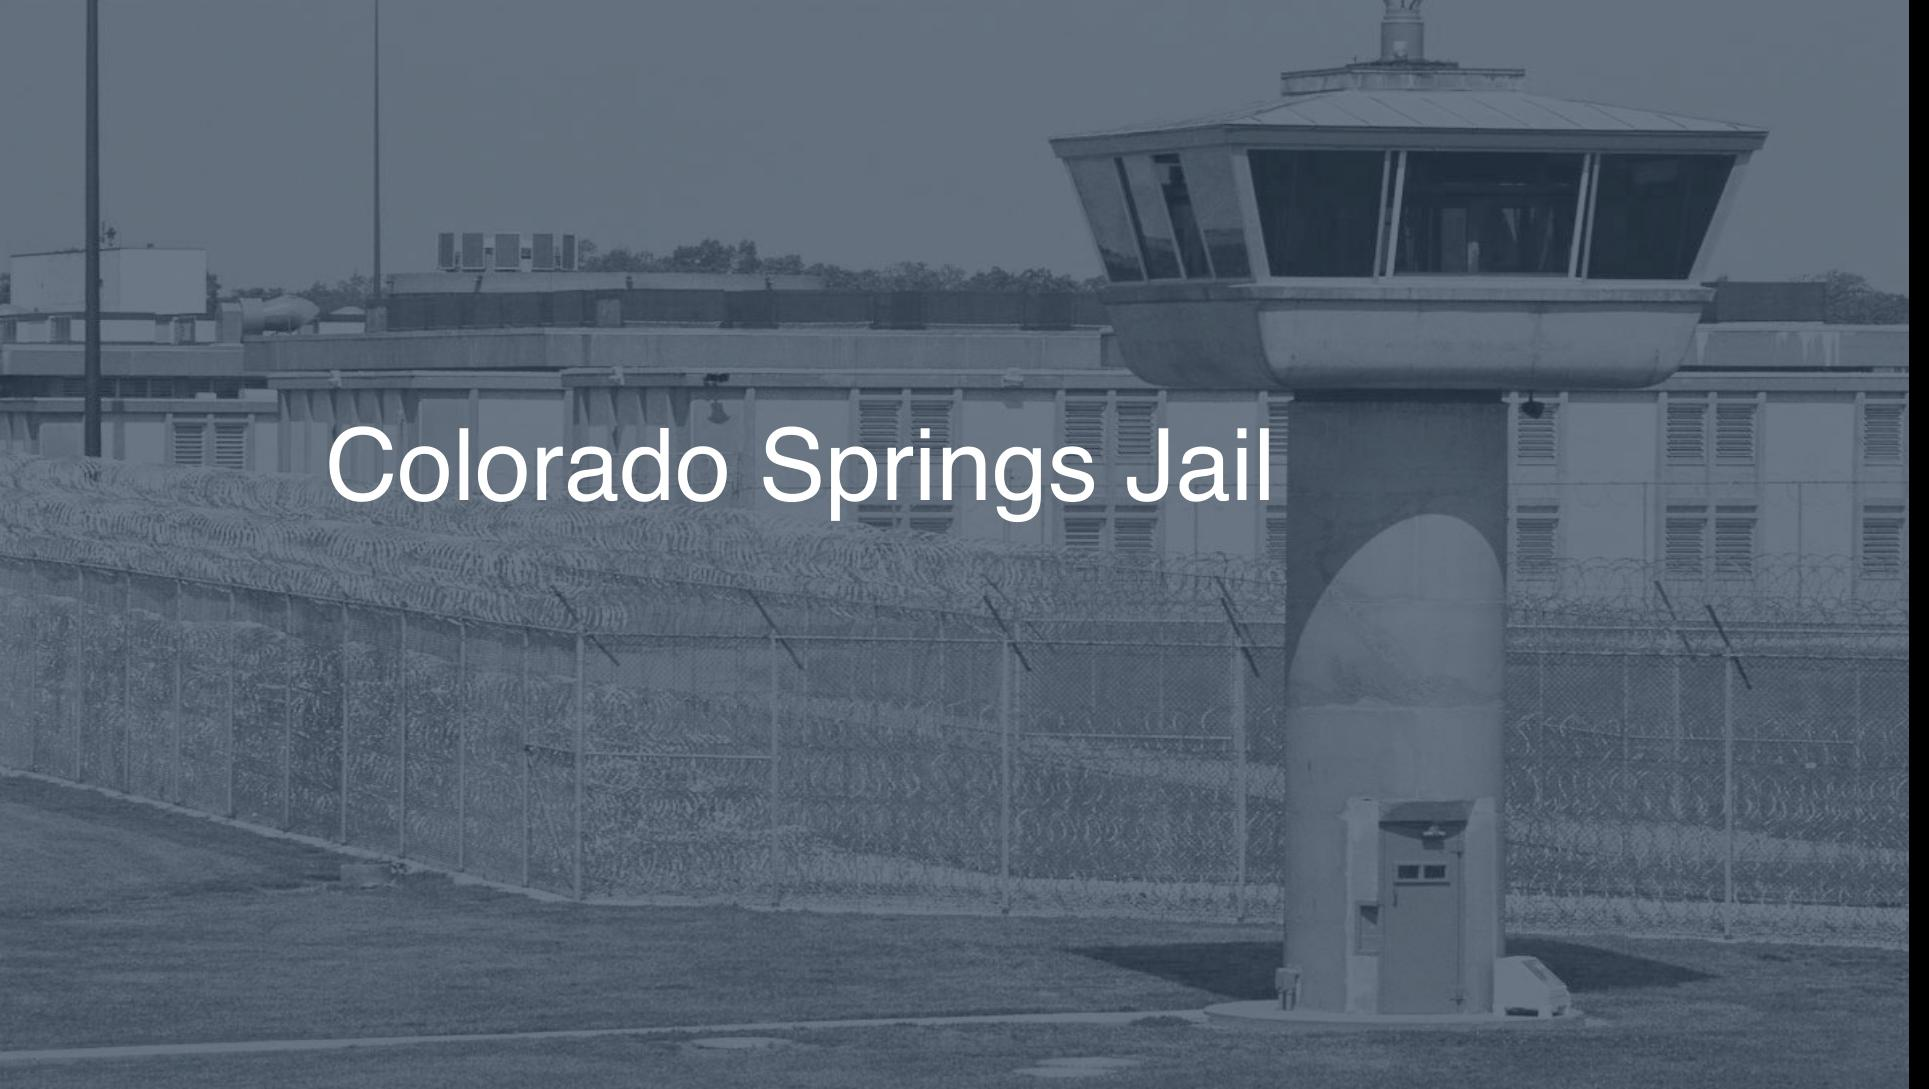 Colorado Springs Jail Inmate Search, Lookup & Services - Pigeonly